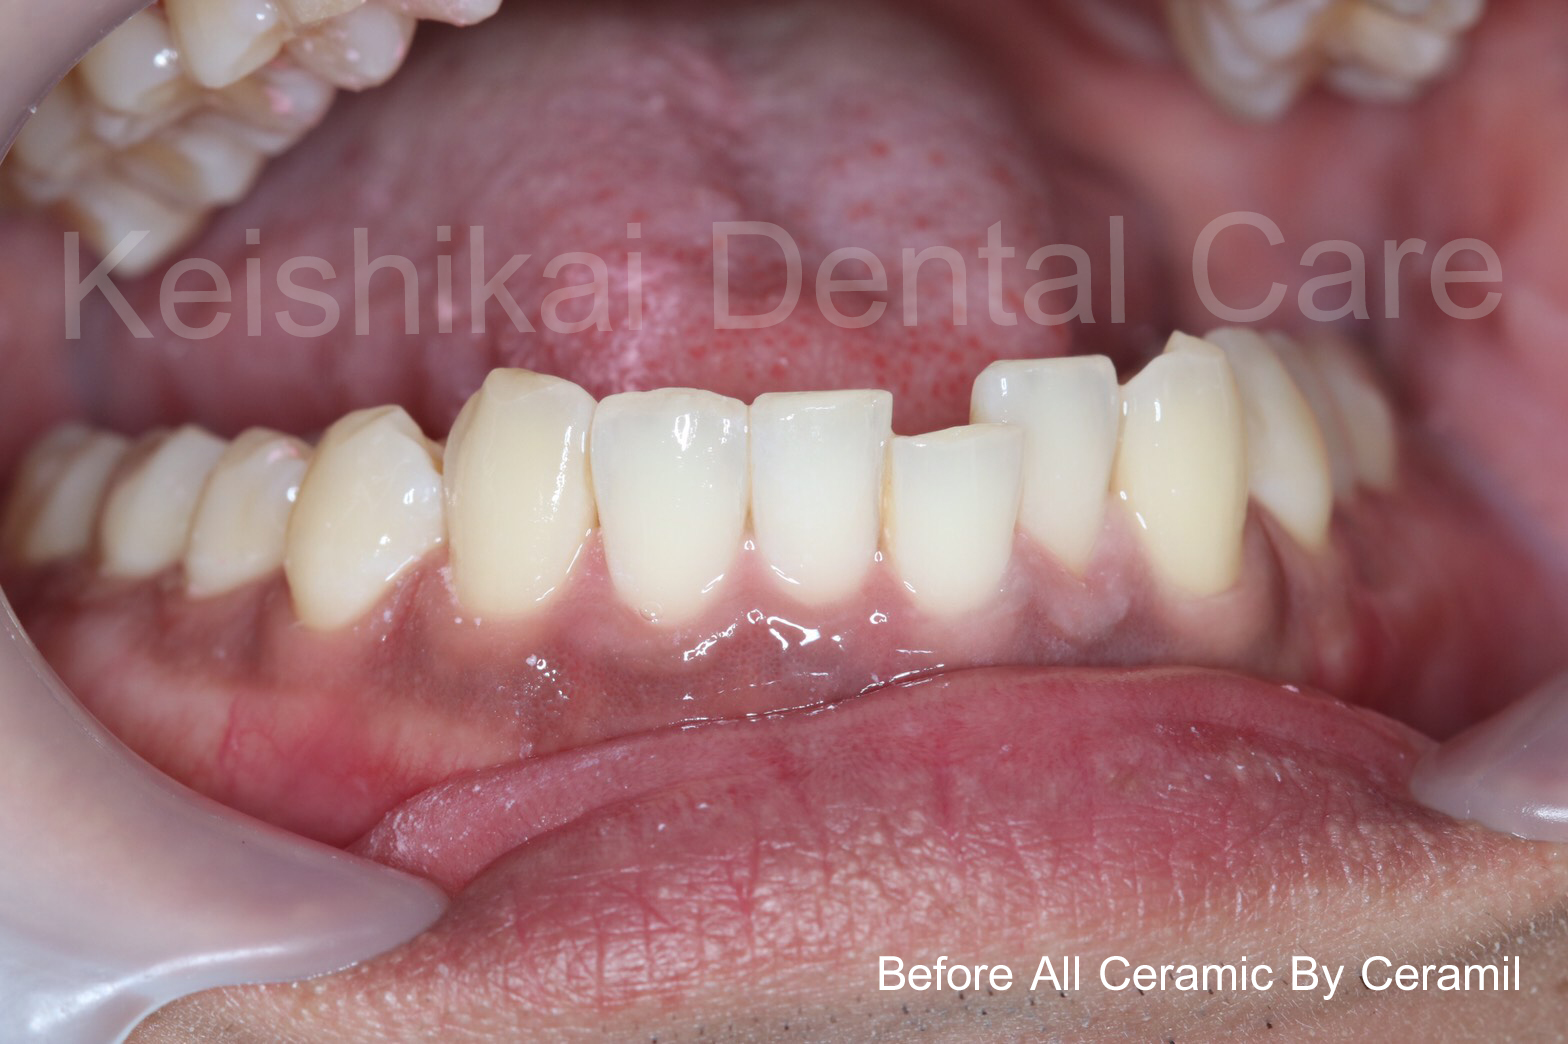 Before1-All Ceramic By Ceramil-keishikaidentalclinic